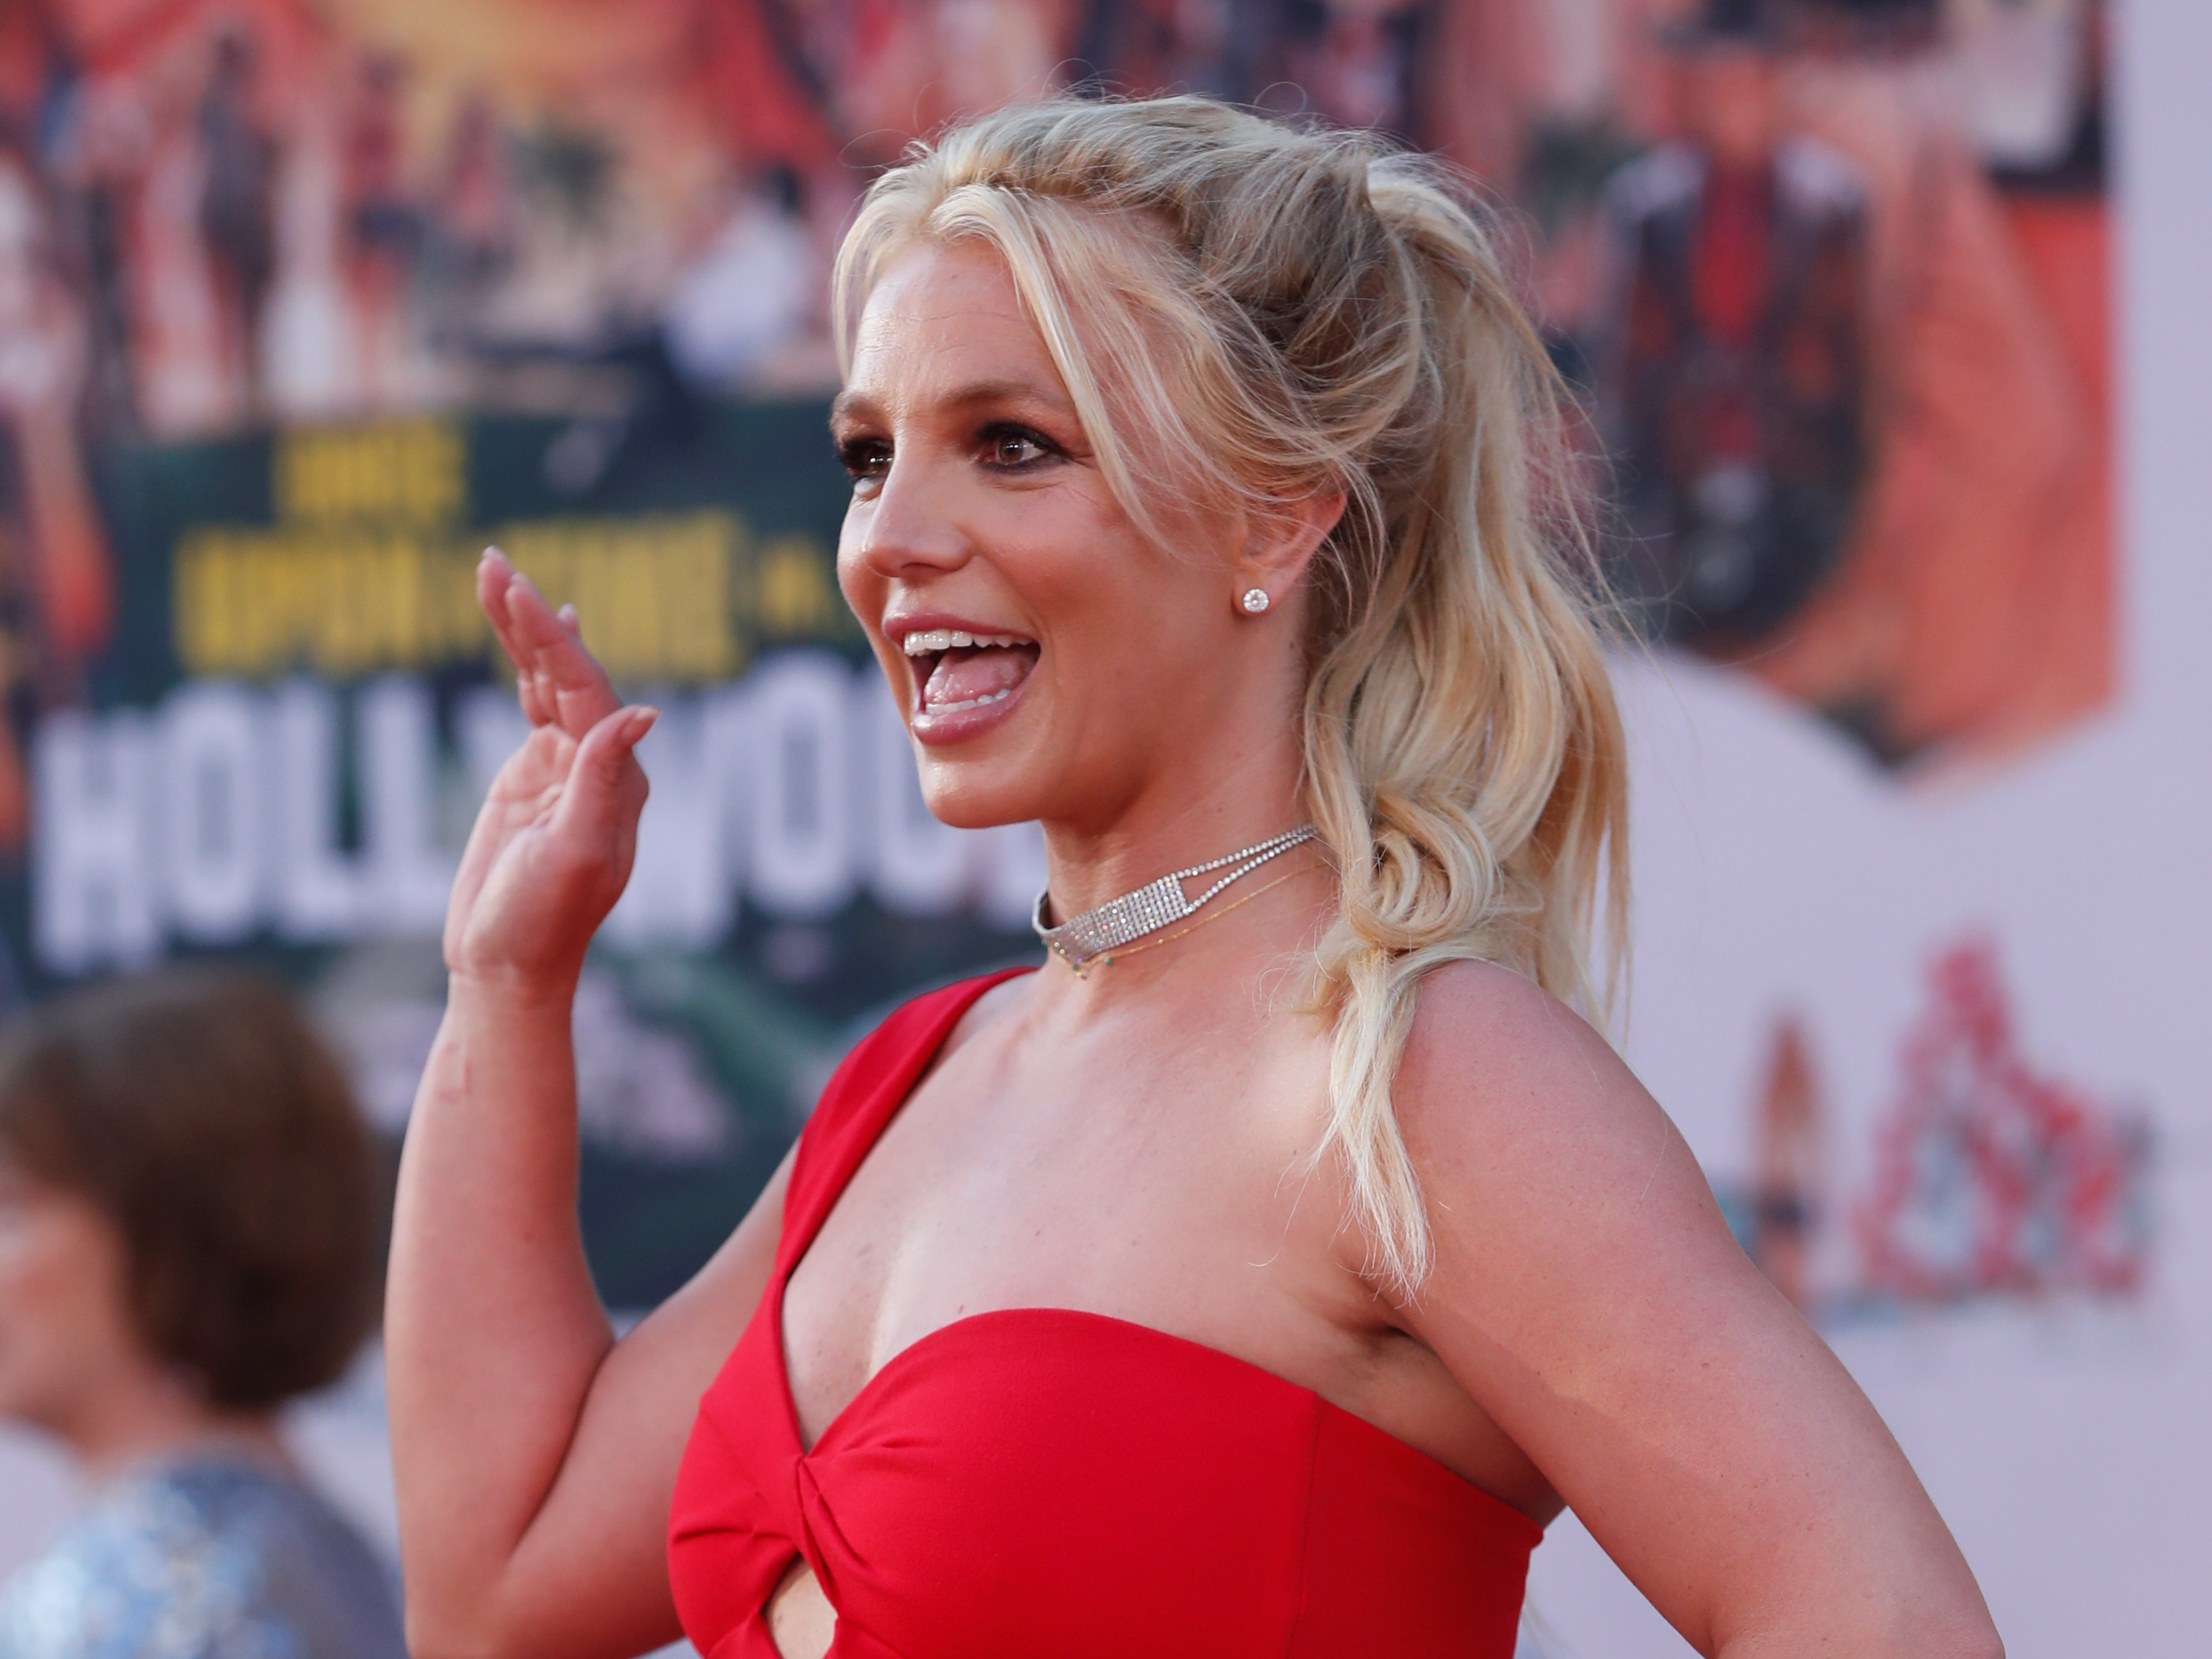 Britney Spears hasn't legally managed her $59 million fortune in 12 years. Right here is how the pop icon makes and spends her money, from Target browsing trips to California mansions.